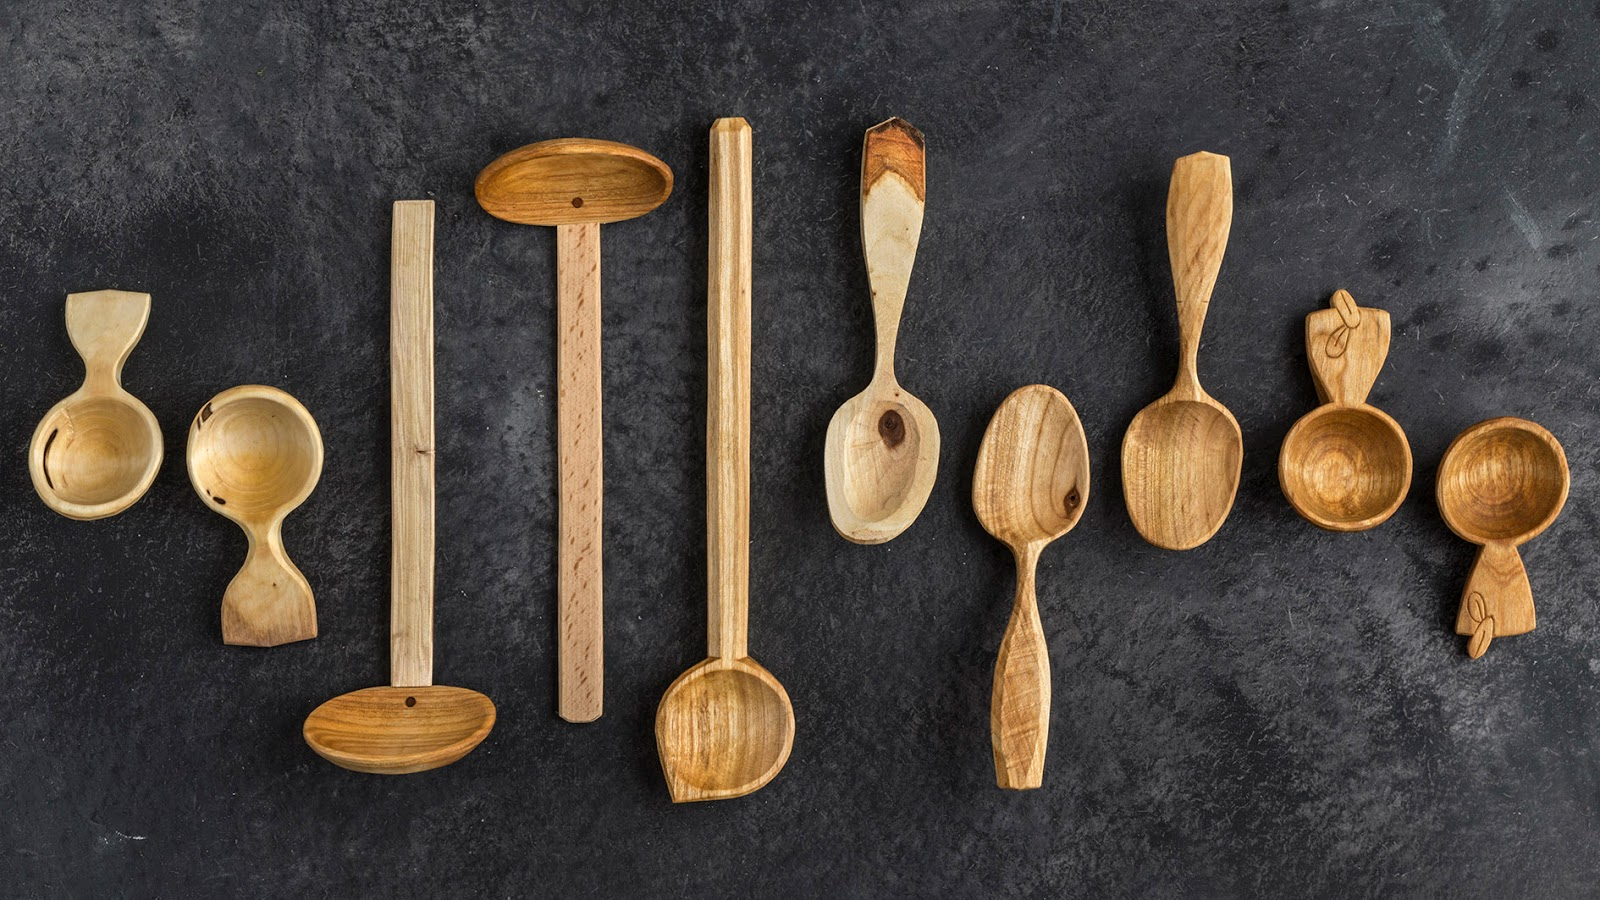 Wood carved spoons by Will Priestley